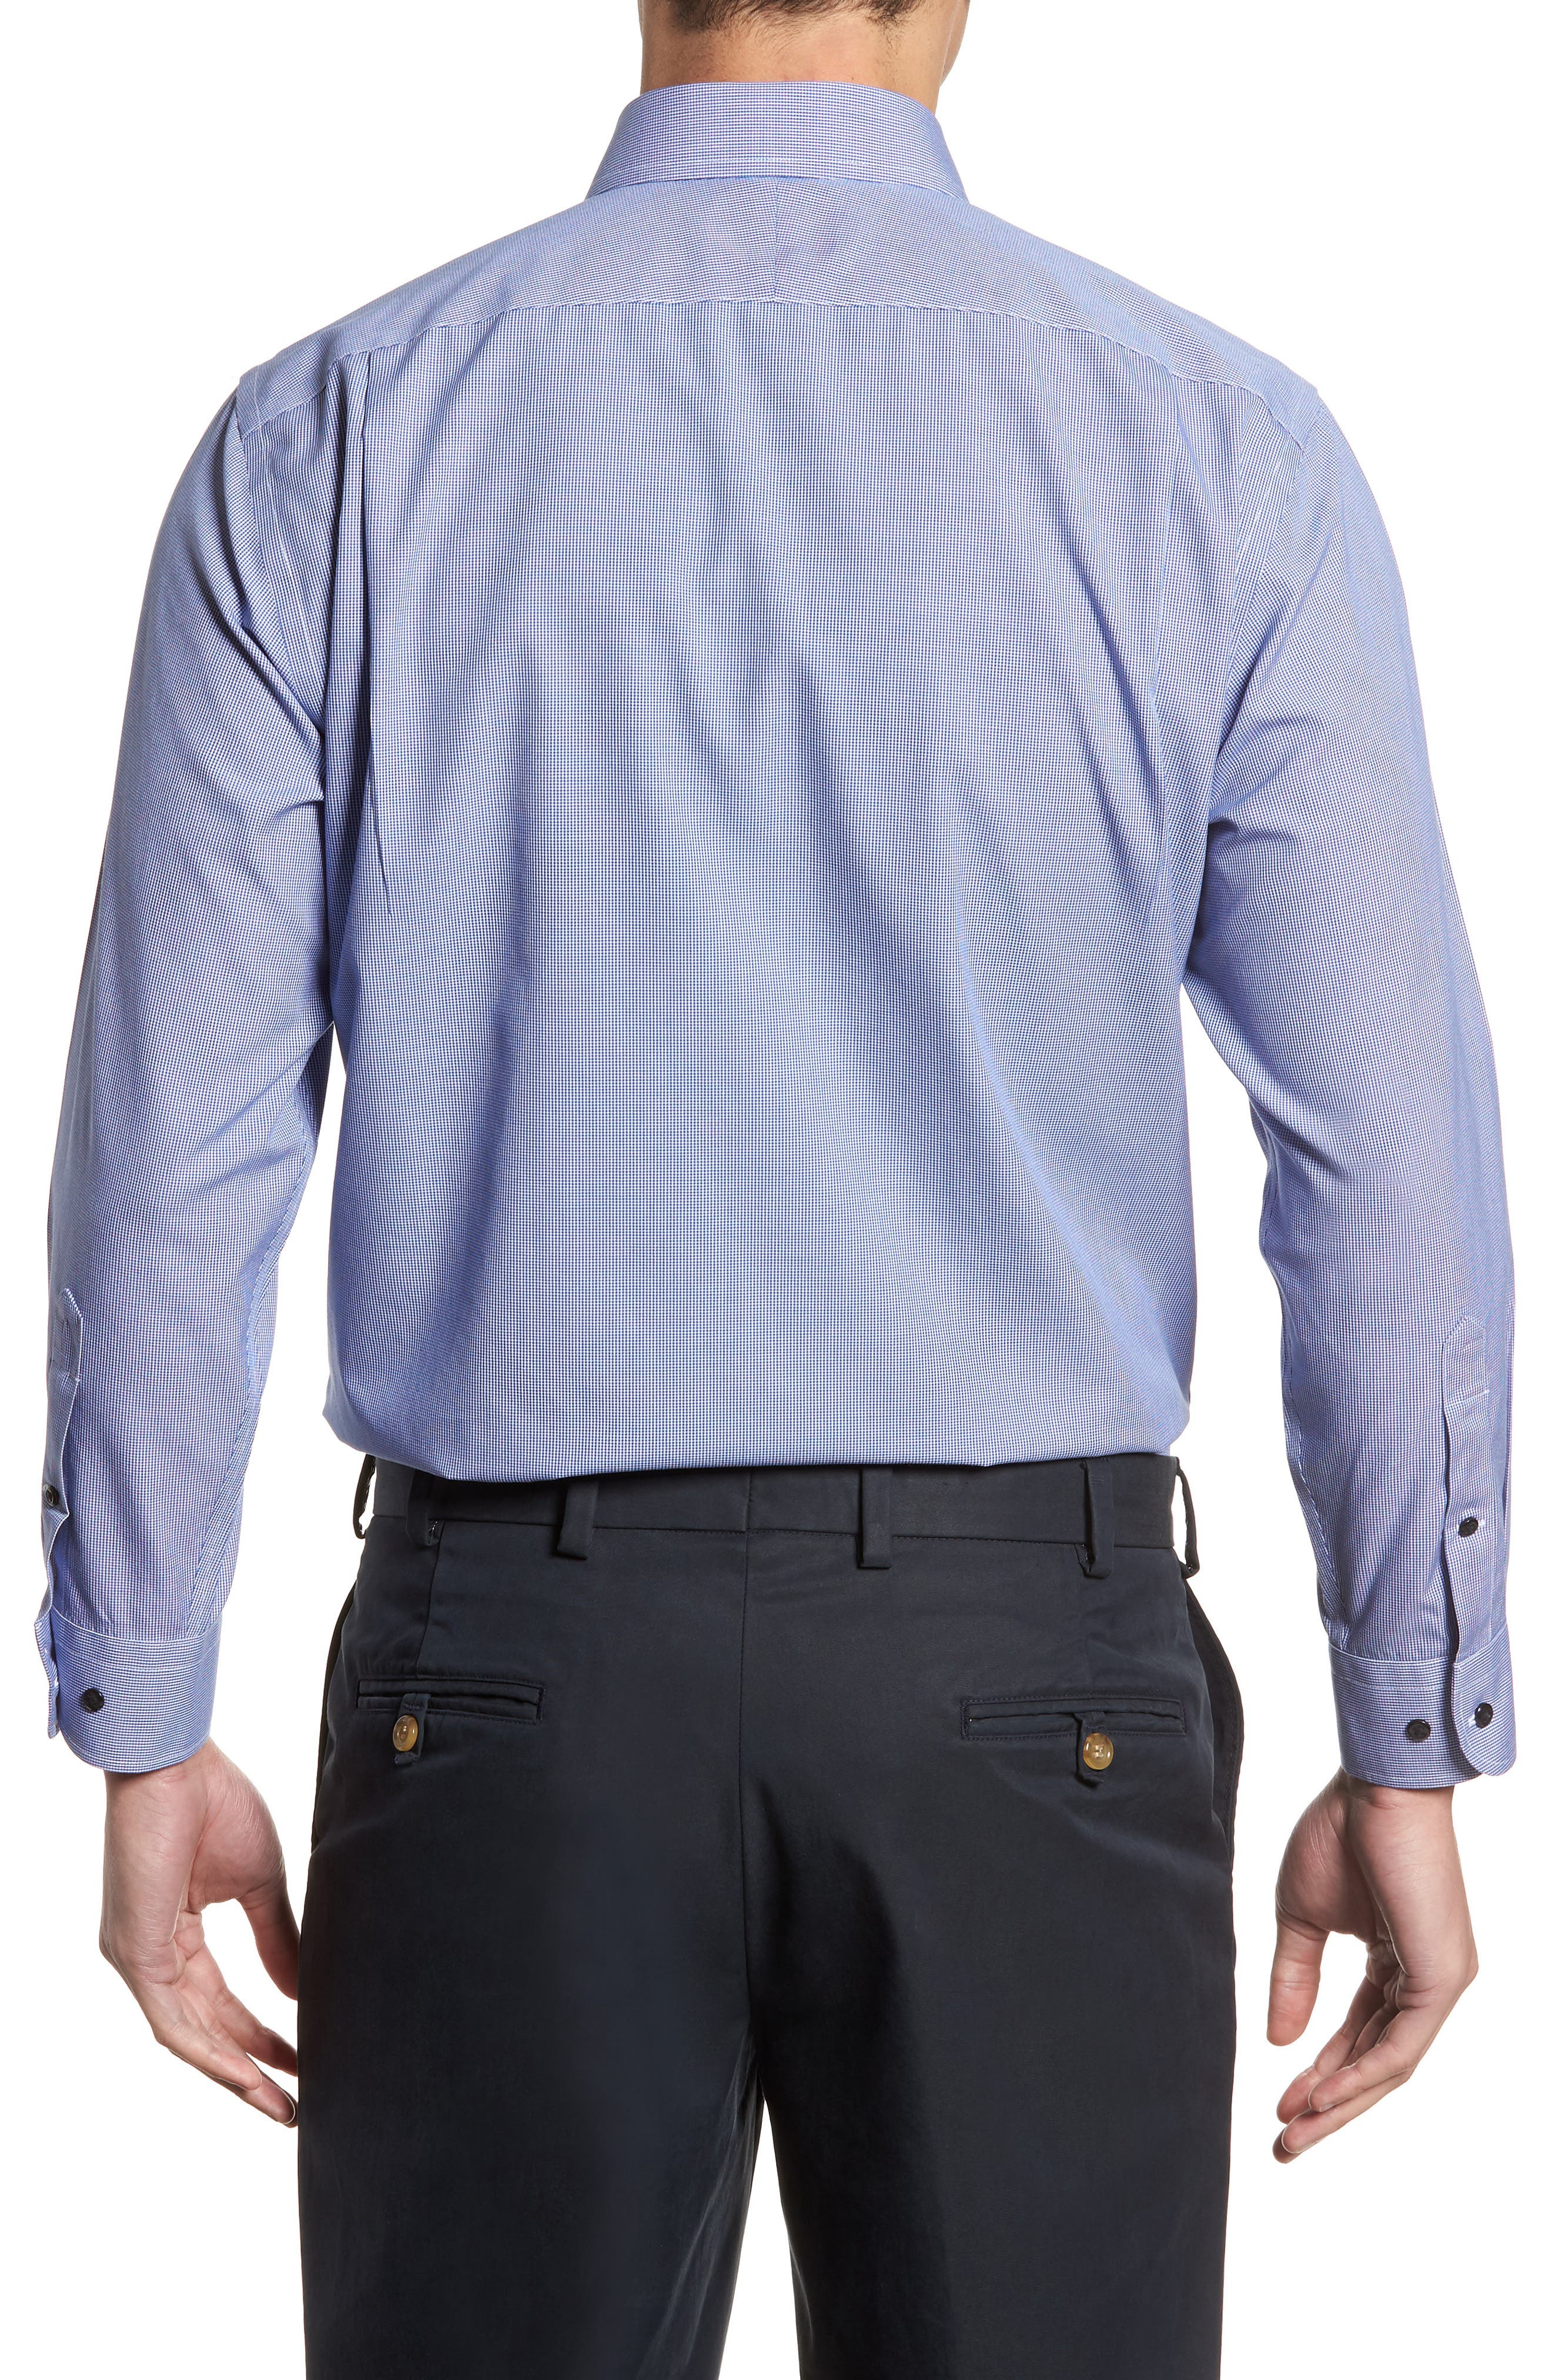 Smartcare<sup>™</sup> Traditional Fit Micro Check Dress Shirt,                             Alternate thumbnail 3, color,                             Blue Marine